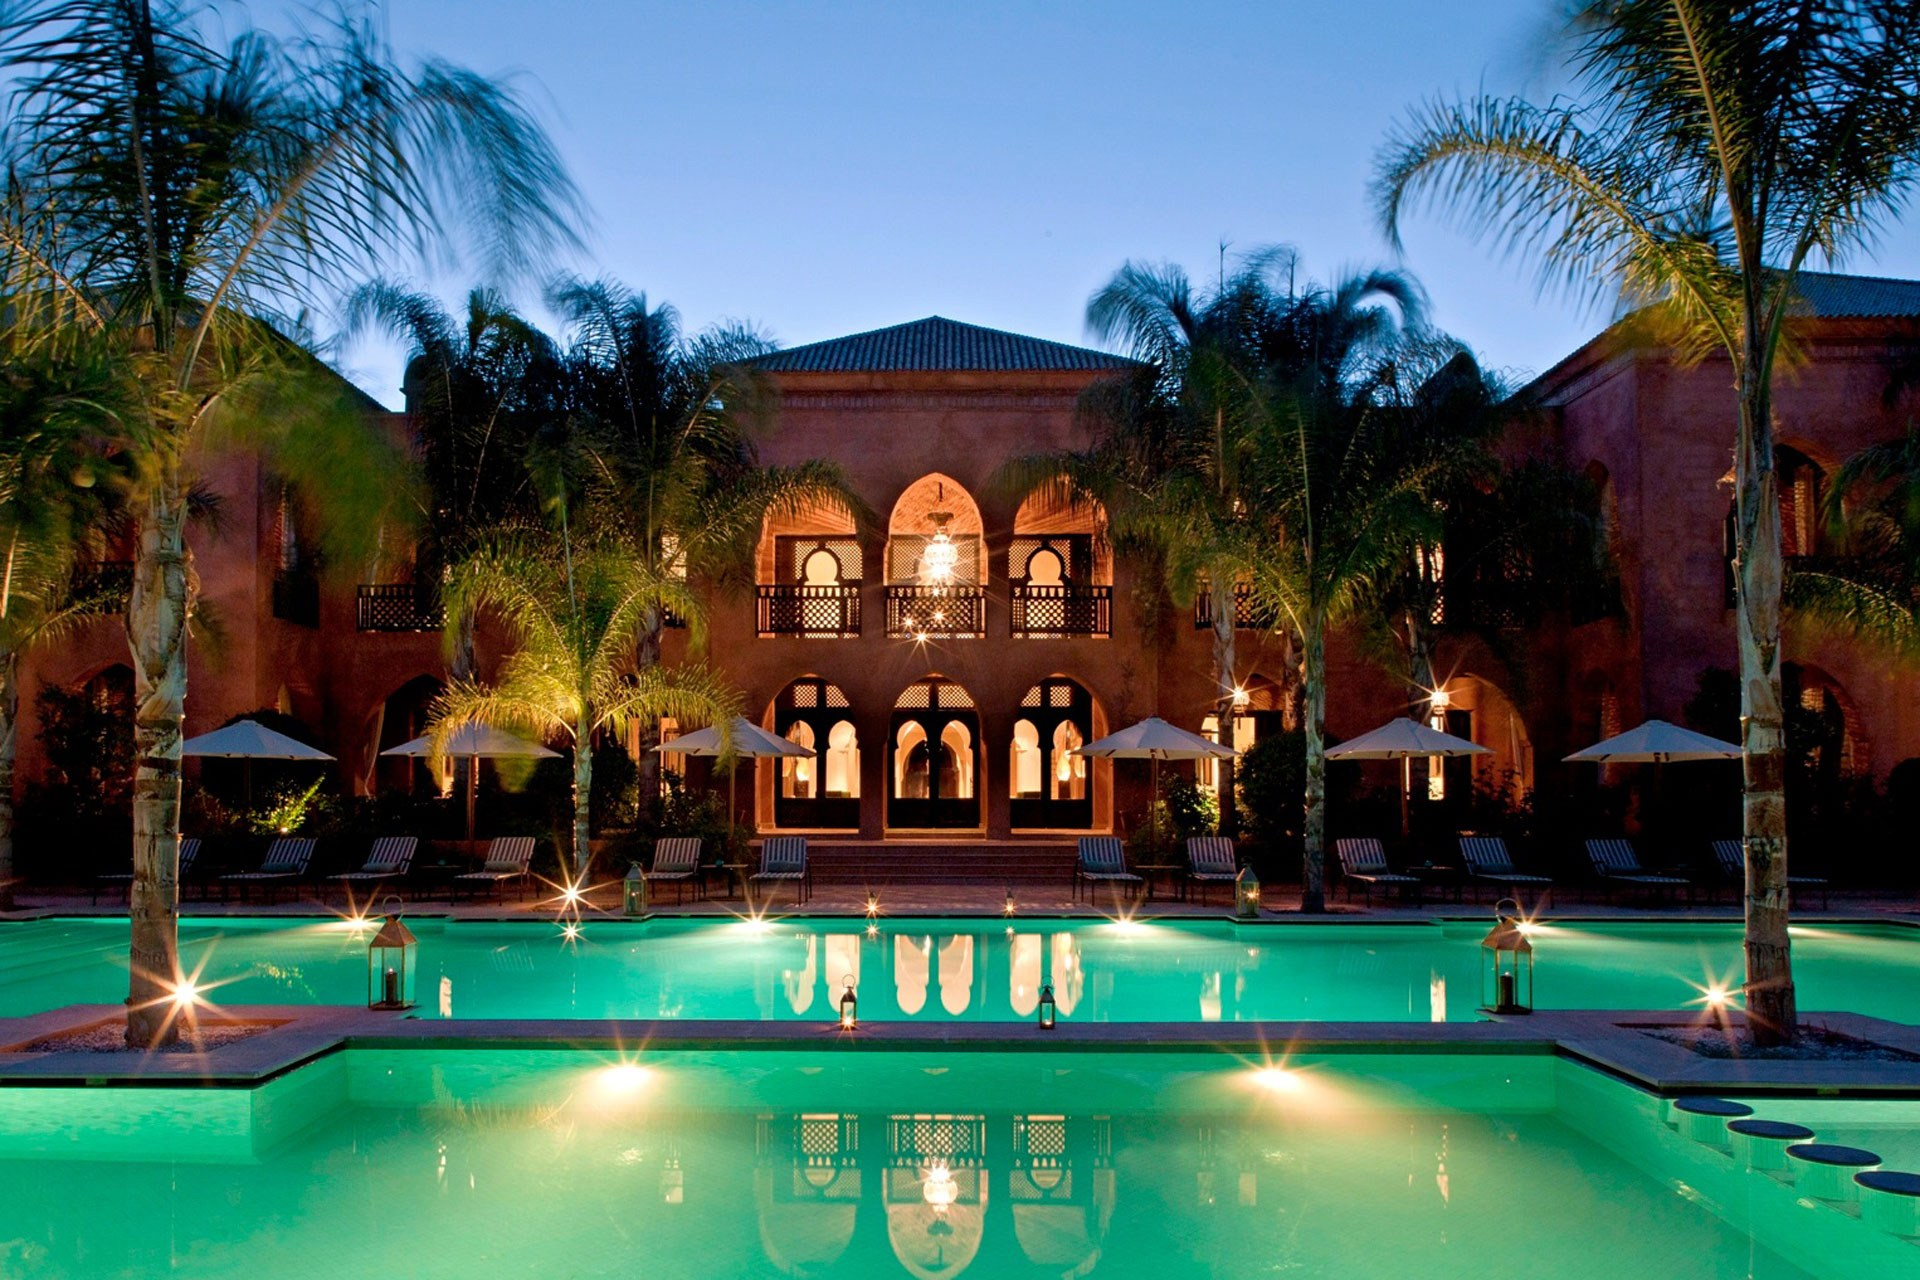 Swimming Pool in Morocco Hotel